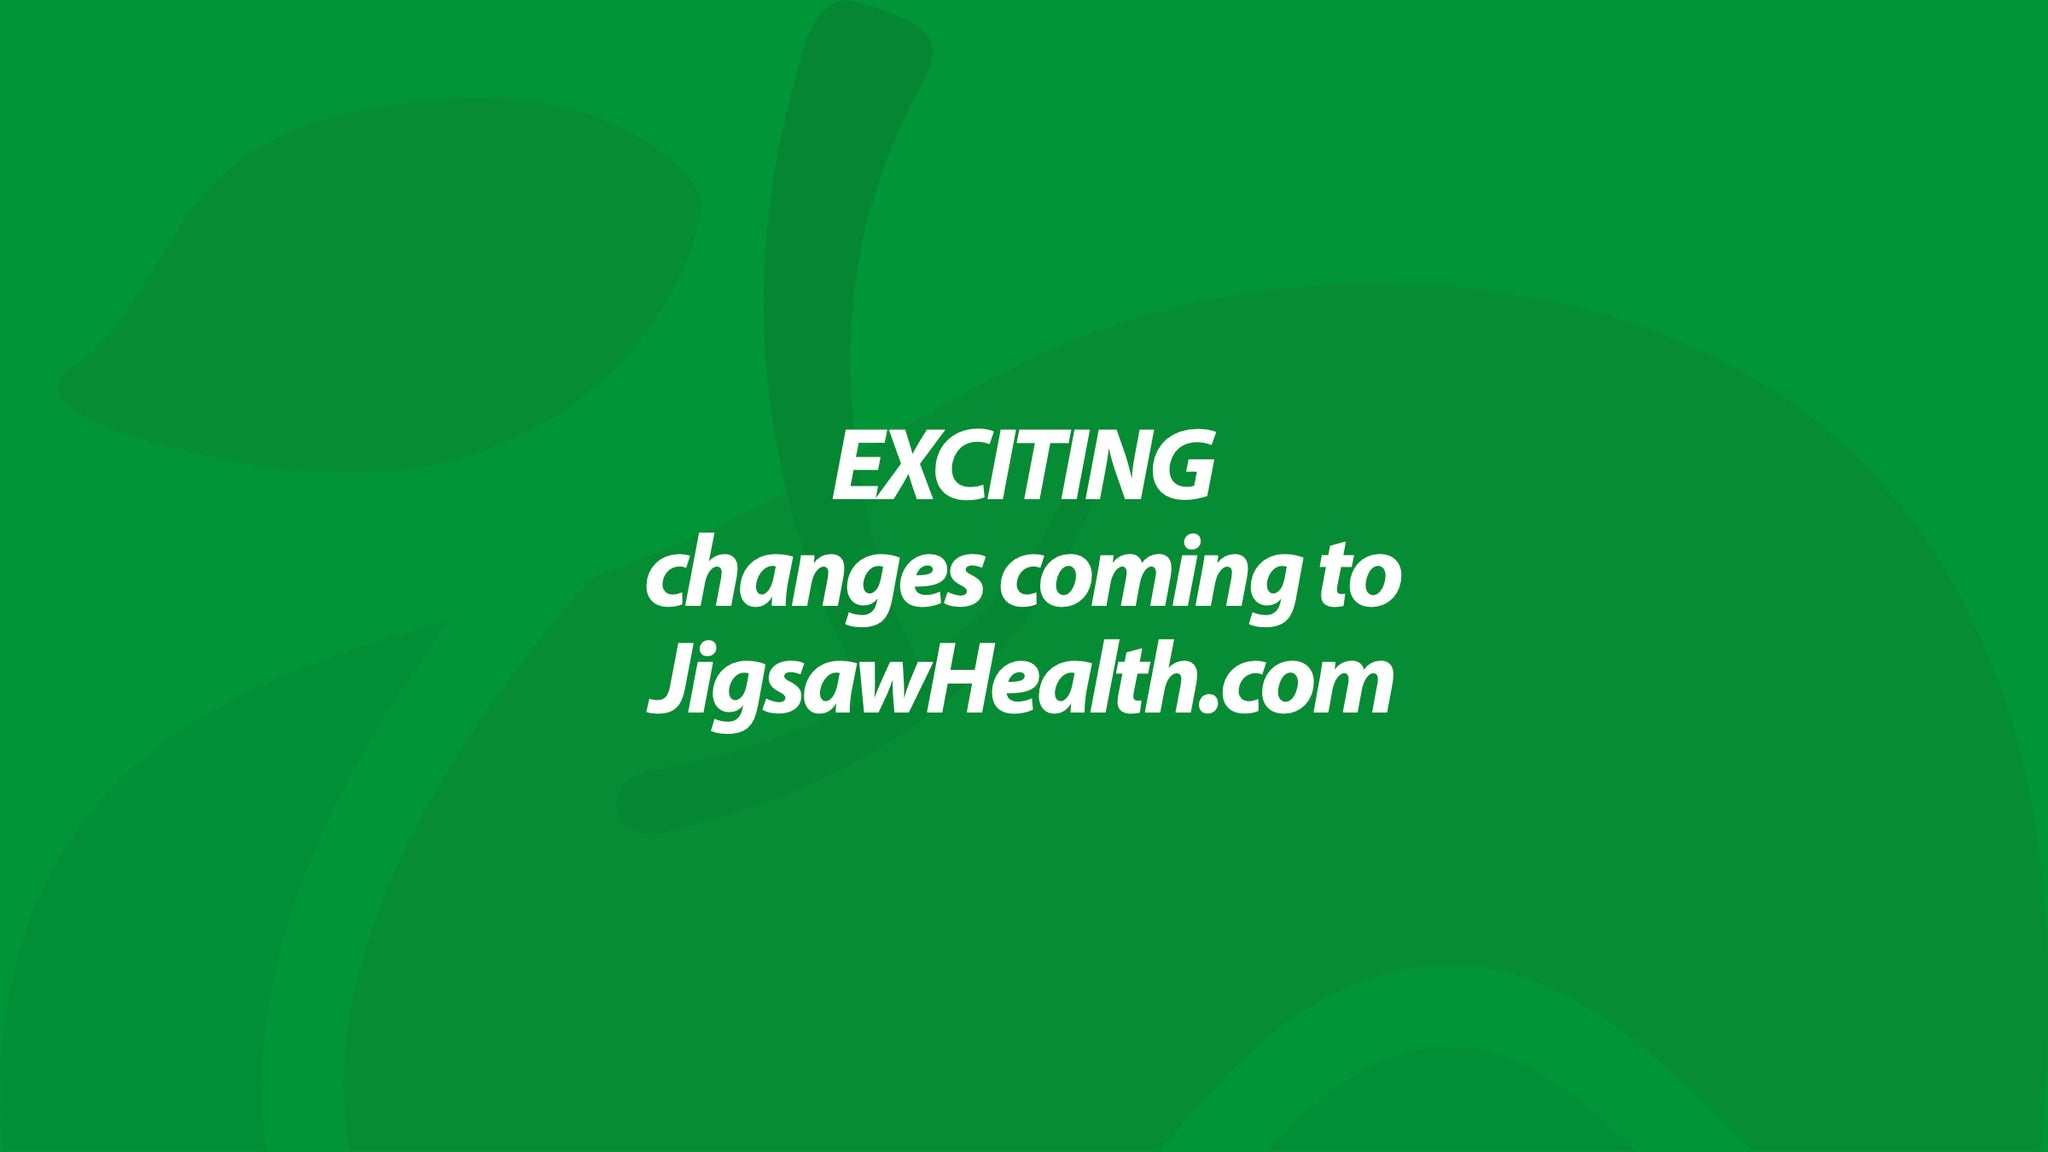 Exciting changes coming to JigsawHealth.com!